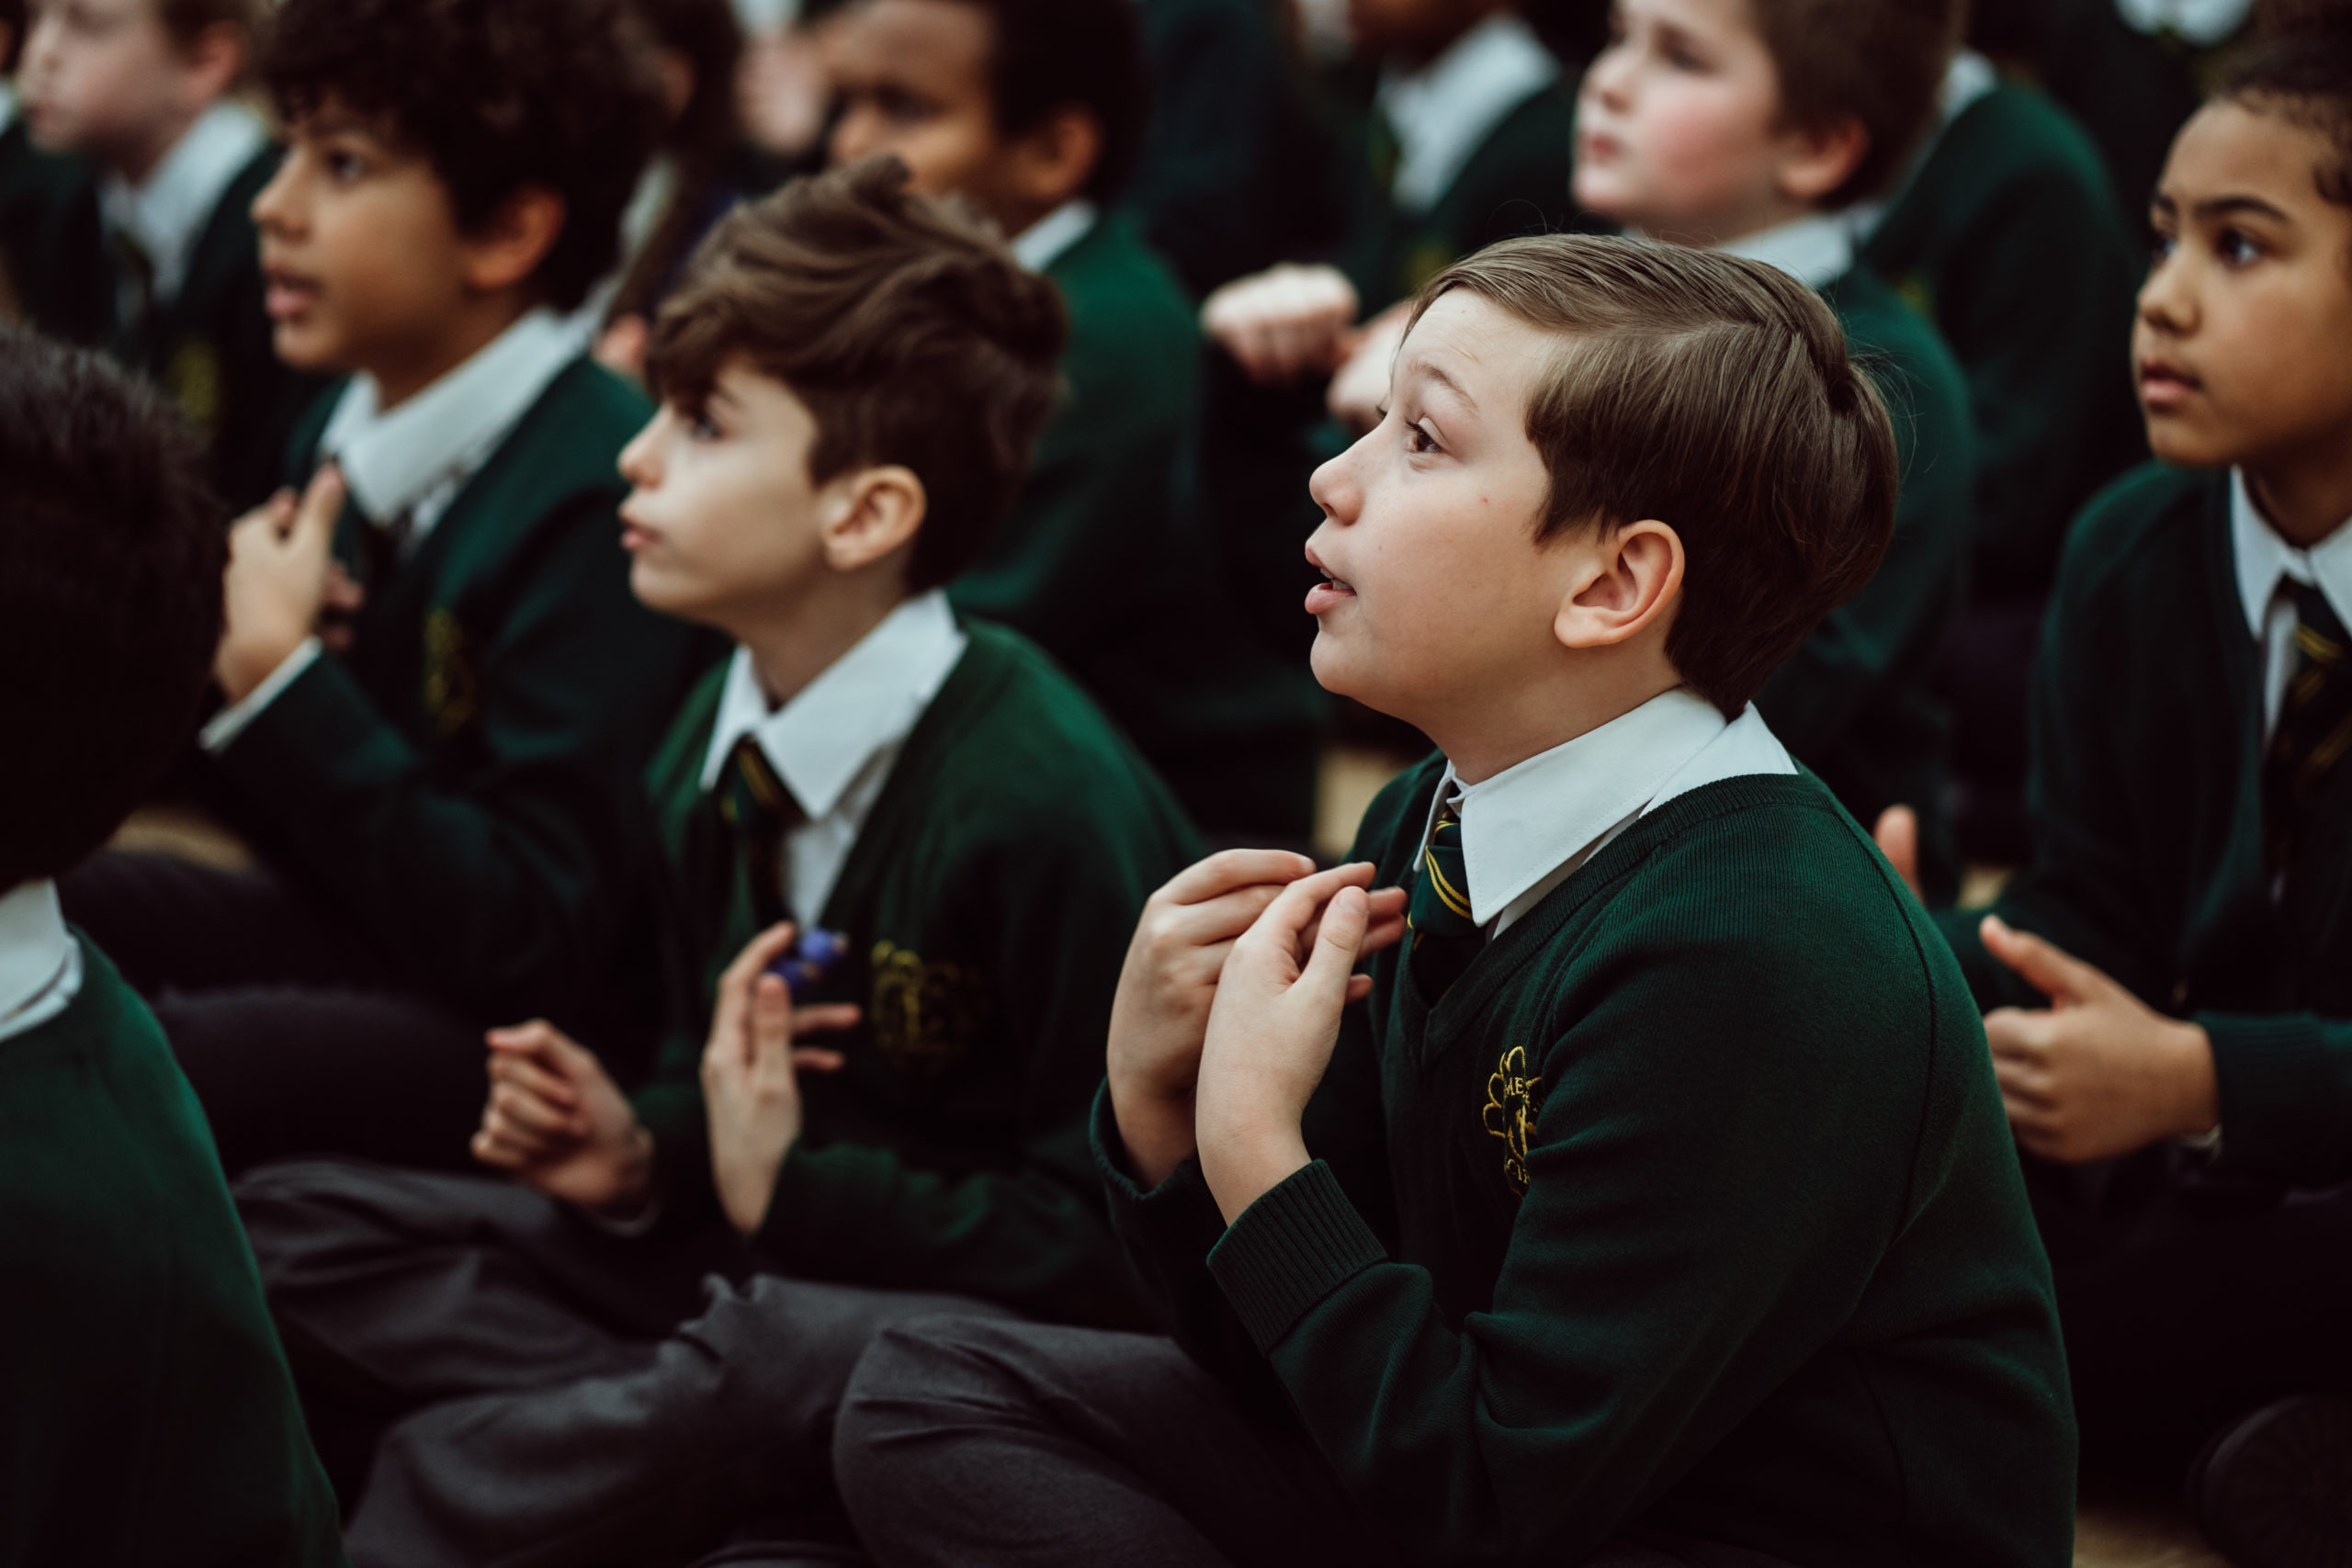 Primary pupil, boy sitting on the floor, holding hands up to his chest, looking forward, six pupils in the background.